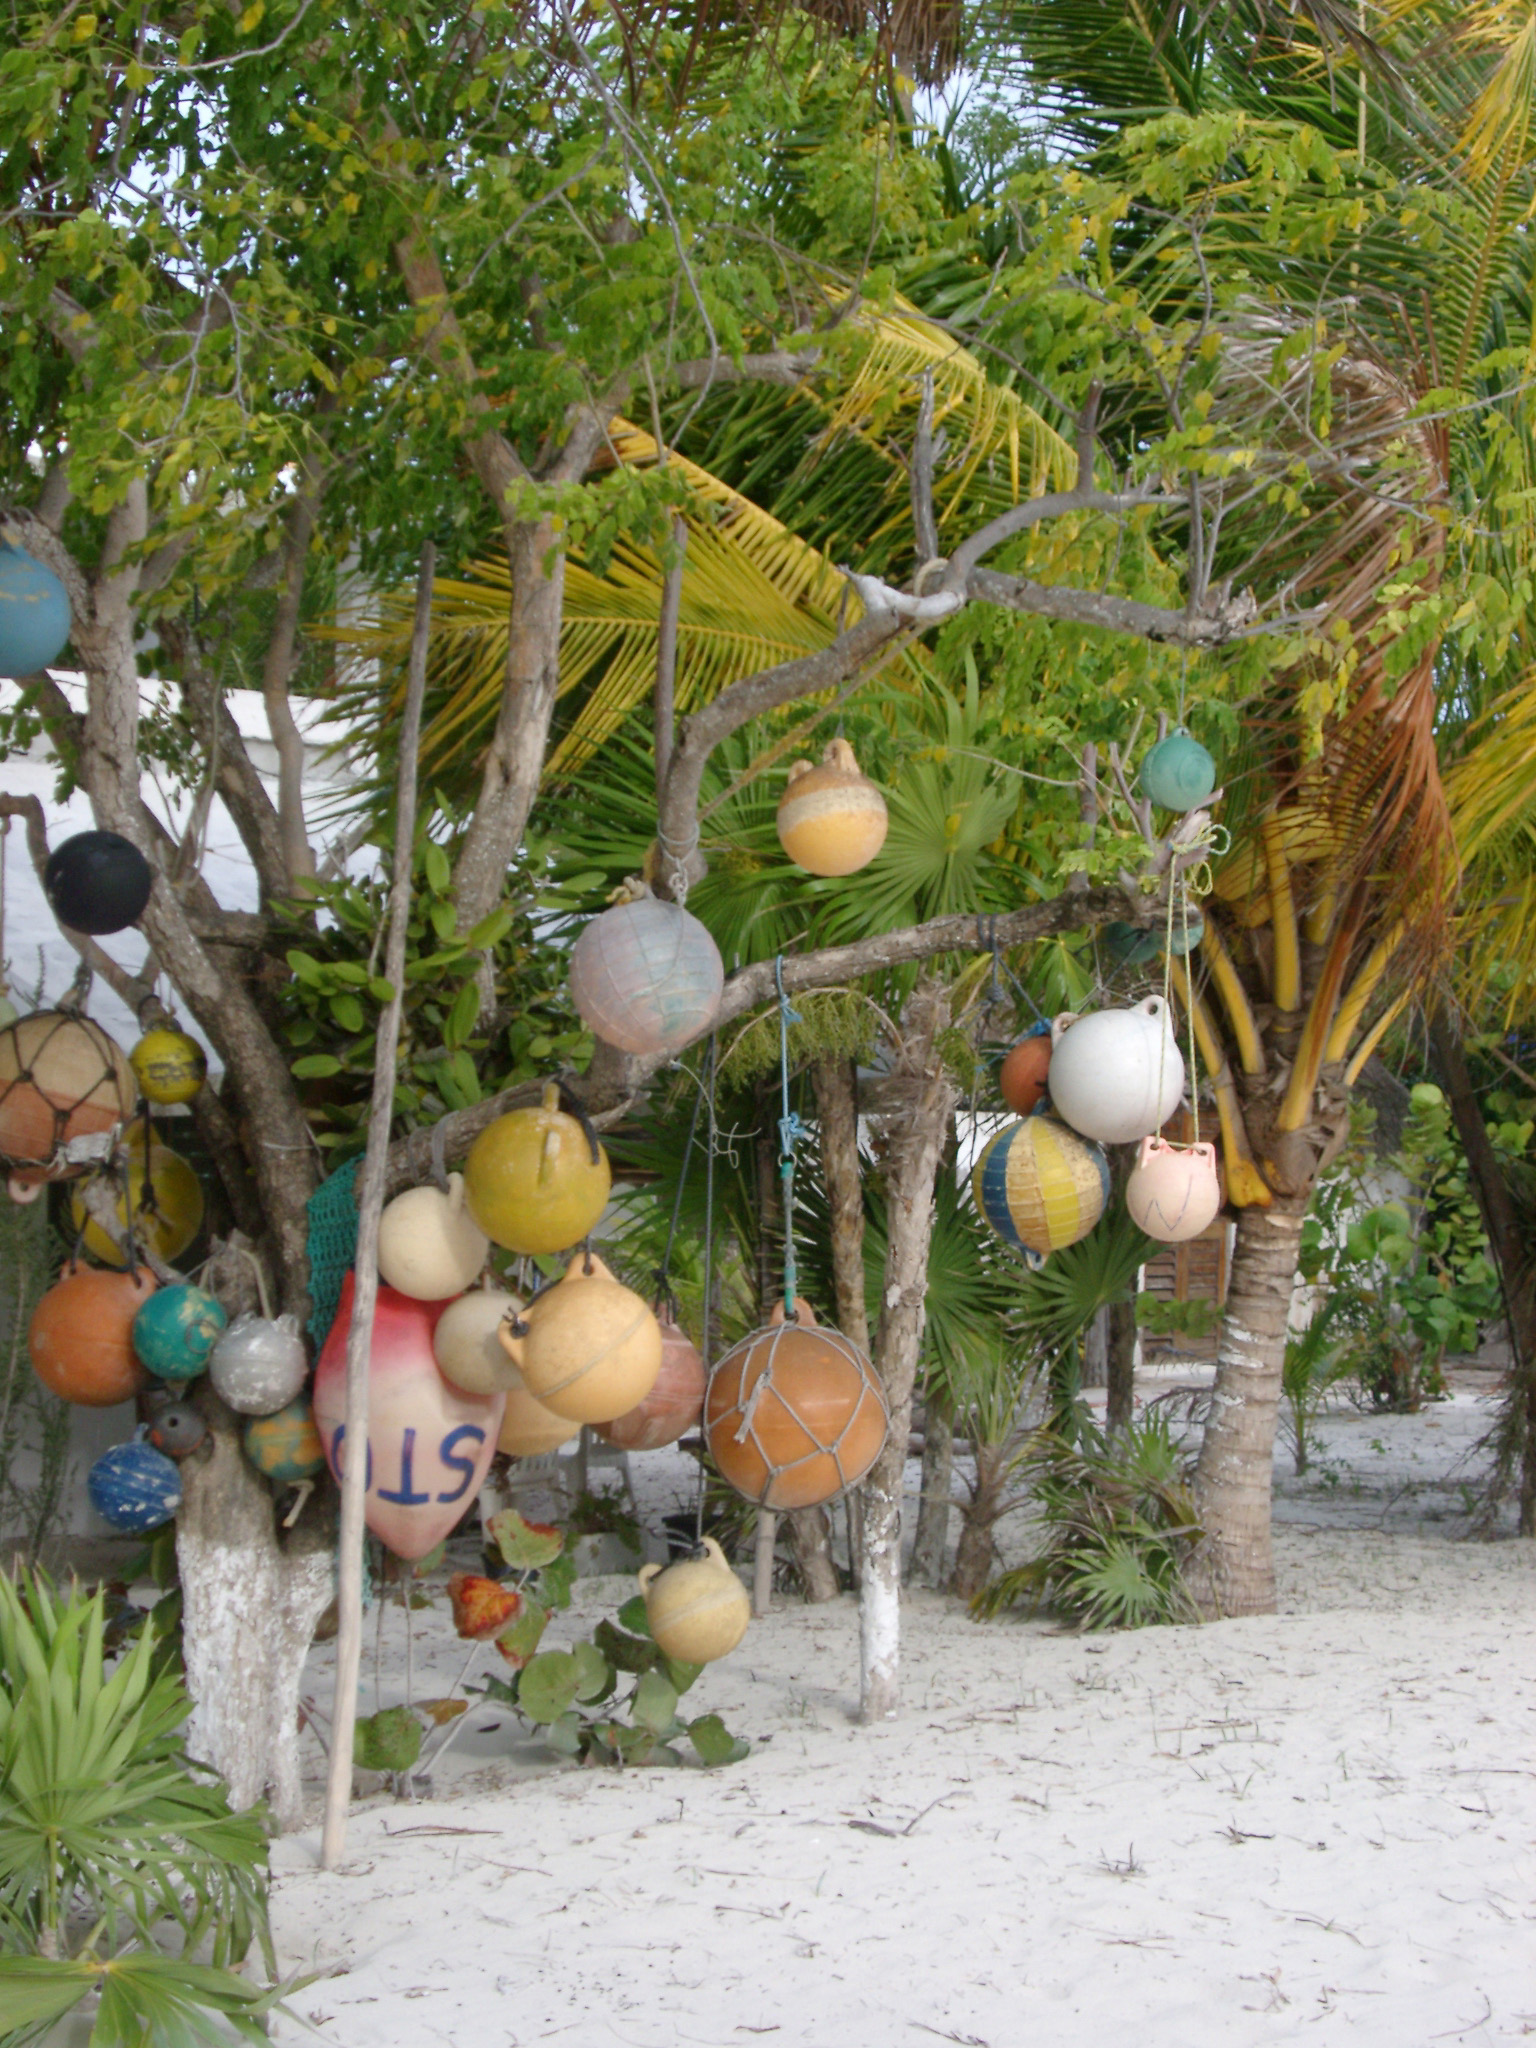 Colorful plastic fishing floats hanging from a wooden frame below palm trees on the golden sand of a tropical beach